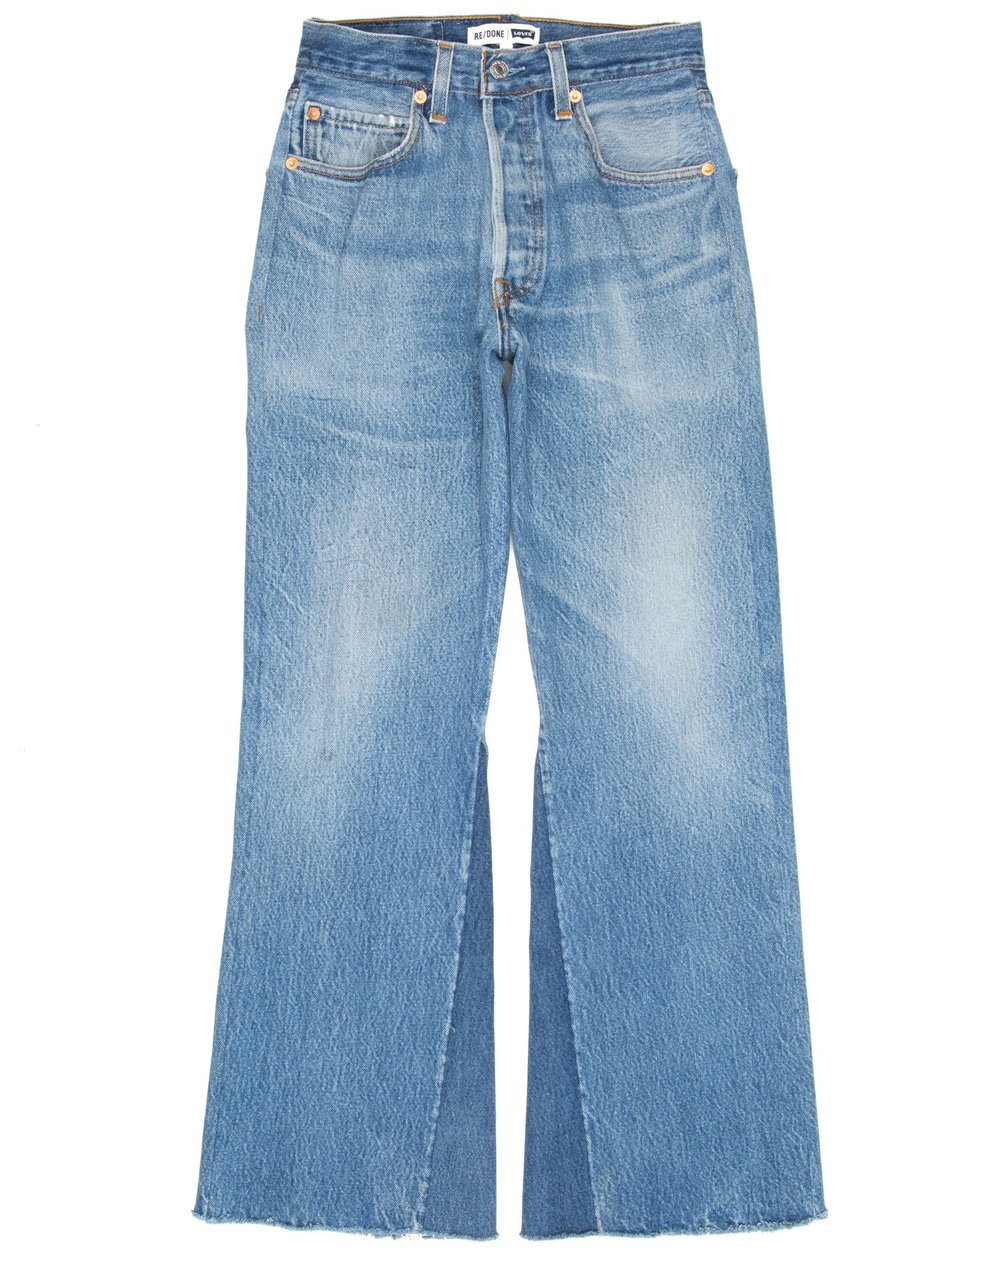 https://shopredone.com/collections/flare-jeans-collection/products/no-2328hrcf1358287